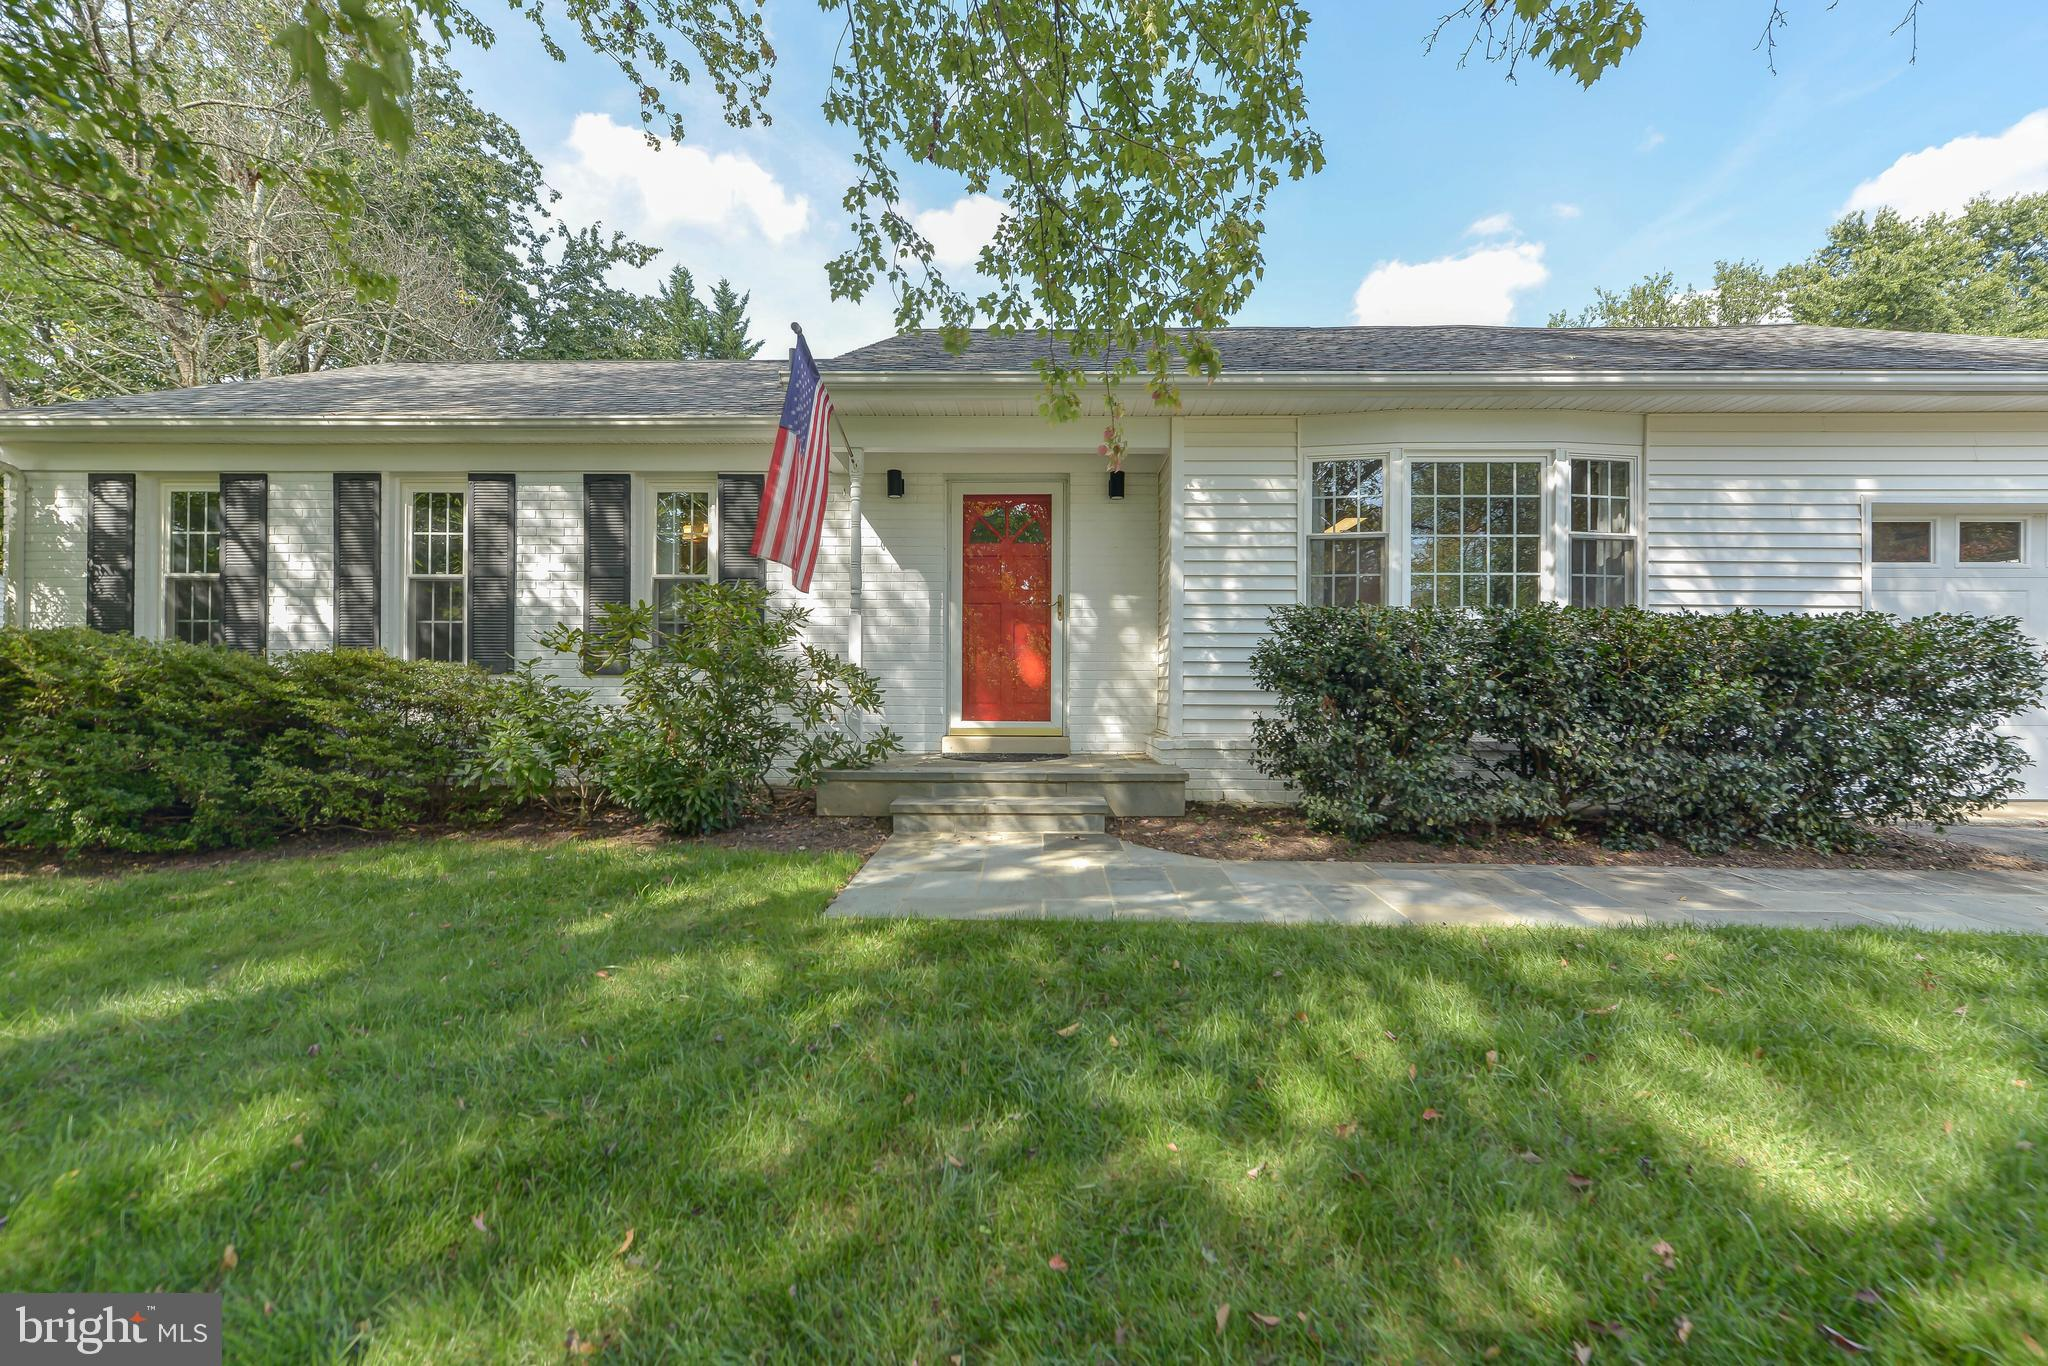 """Move right in to this welcoming, cozy & lovingly maintained rambler in well-located Manor Lake, perfect for living, playing & entertaining.  Starting from the beautiful curb appeal, throughout the updated interior, and into the gorgeous backyard oasis, this home will not disappoint!  On the entry level, enjoy the bright eat-in kitchen with stainless appliances, granite counters, large pantry and direct access to the oversized one-car garage; open living / dining area with updated flooring and windows overlooking the backyard; 3 comfortable bedrooms and 2 full bathrooms.  On the lower level, spread out in the extremely spacious family / rec room with wood stove, and sliding glass doors to the screened in porch; 4th bedroom / office; bonus room (great for a play space, music room or storage); half bathroom; and large laundry/storage/utility room.  In the fully landscaped, fenced-in and enormous backyard, you'll find an amazingly sun-filled """"shed"""" with electric service (use it as a gym, art studio or greenhouse? it's too nice for just storage!), koi pond, beautiful trees, plants & blueberry bushes, patio, basketball area and play equipment.  Updates include roof (2019), main level flooring (2019), light fixtures (2021), double-pane windows, kitchen & baths.  Close to downtown Rockville and steps to Lake Frank and Rock Creek Regional Park, this is truly a unique and beautiful home!"""